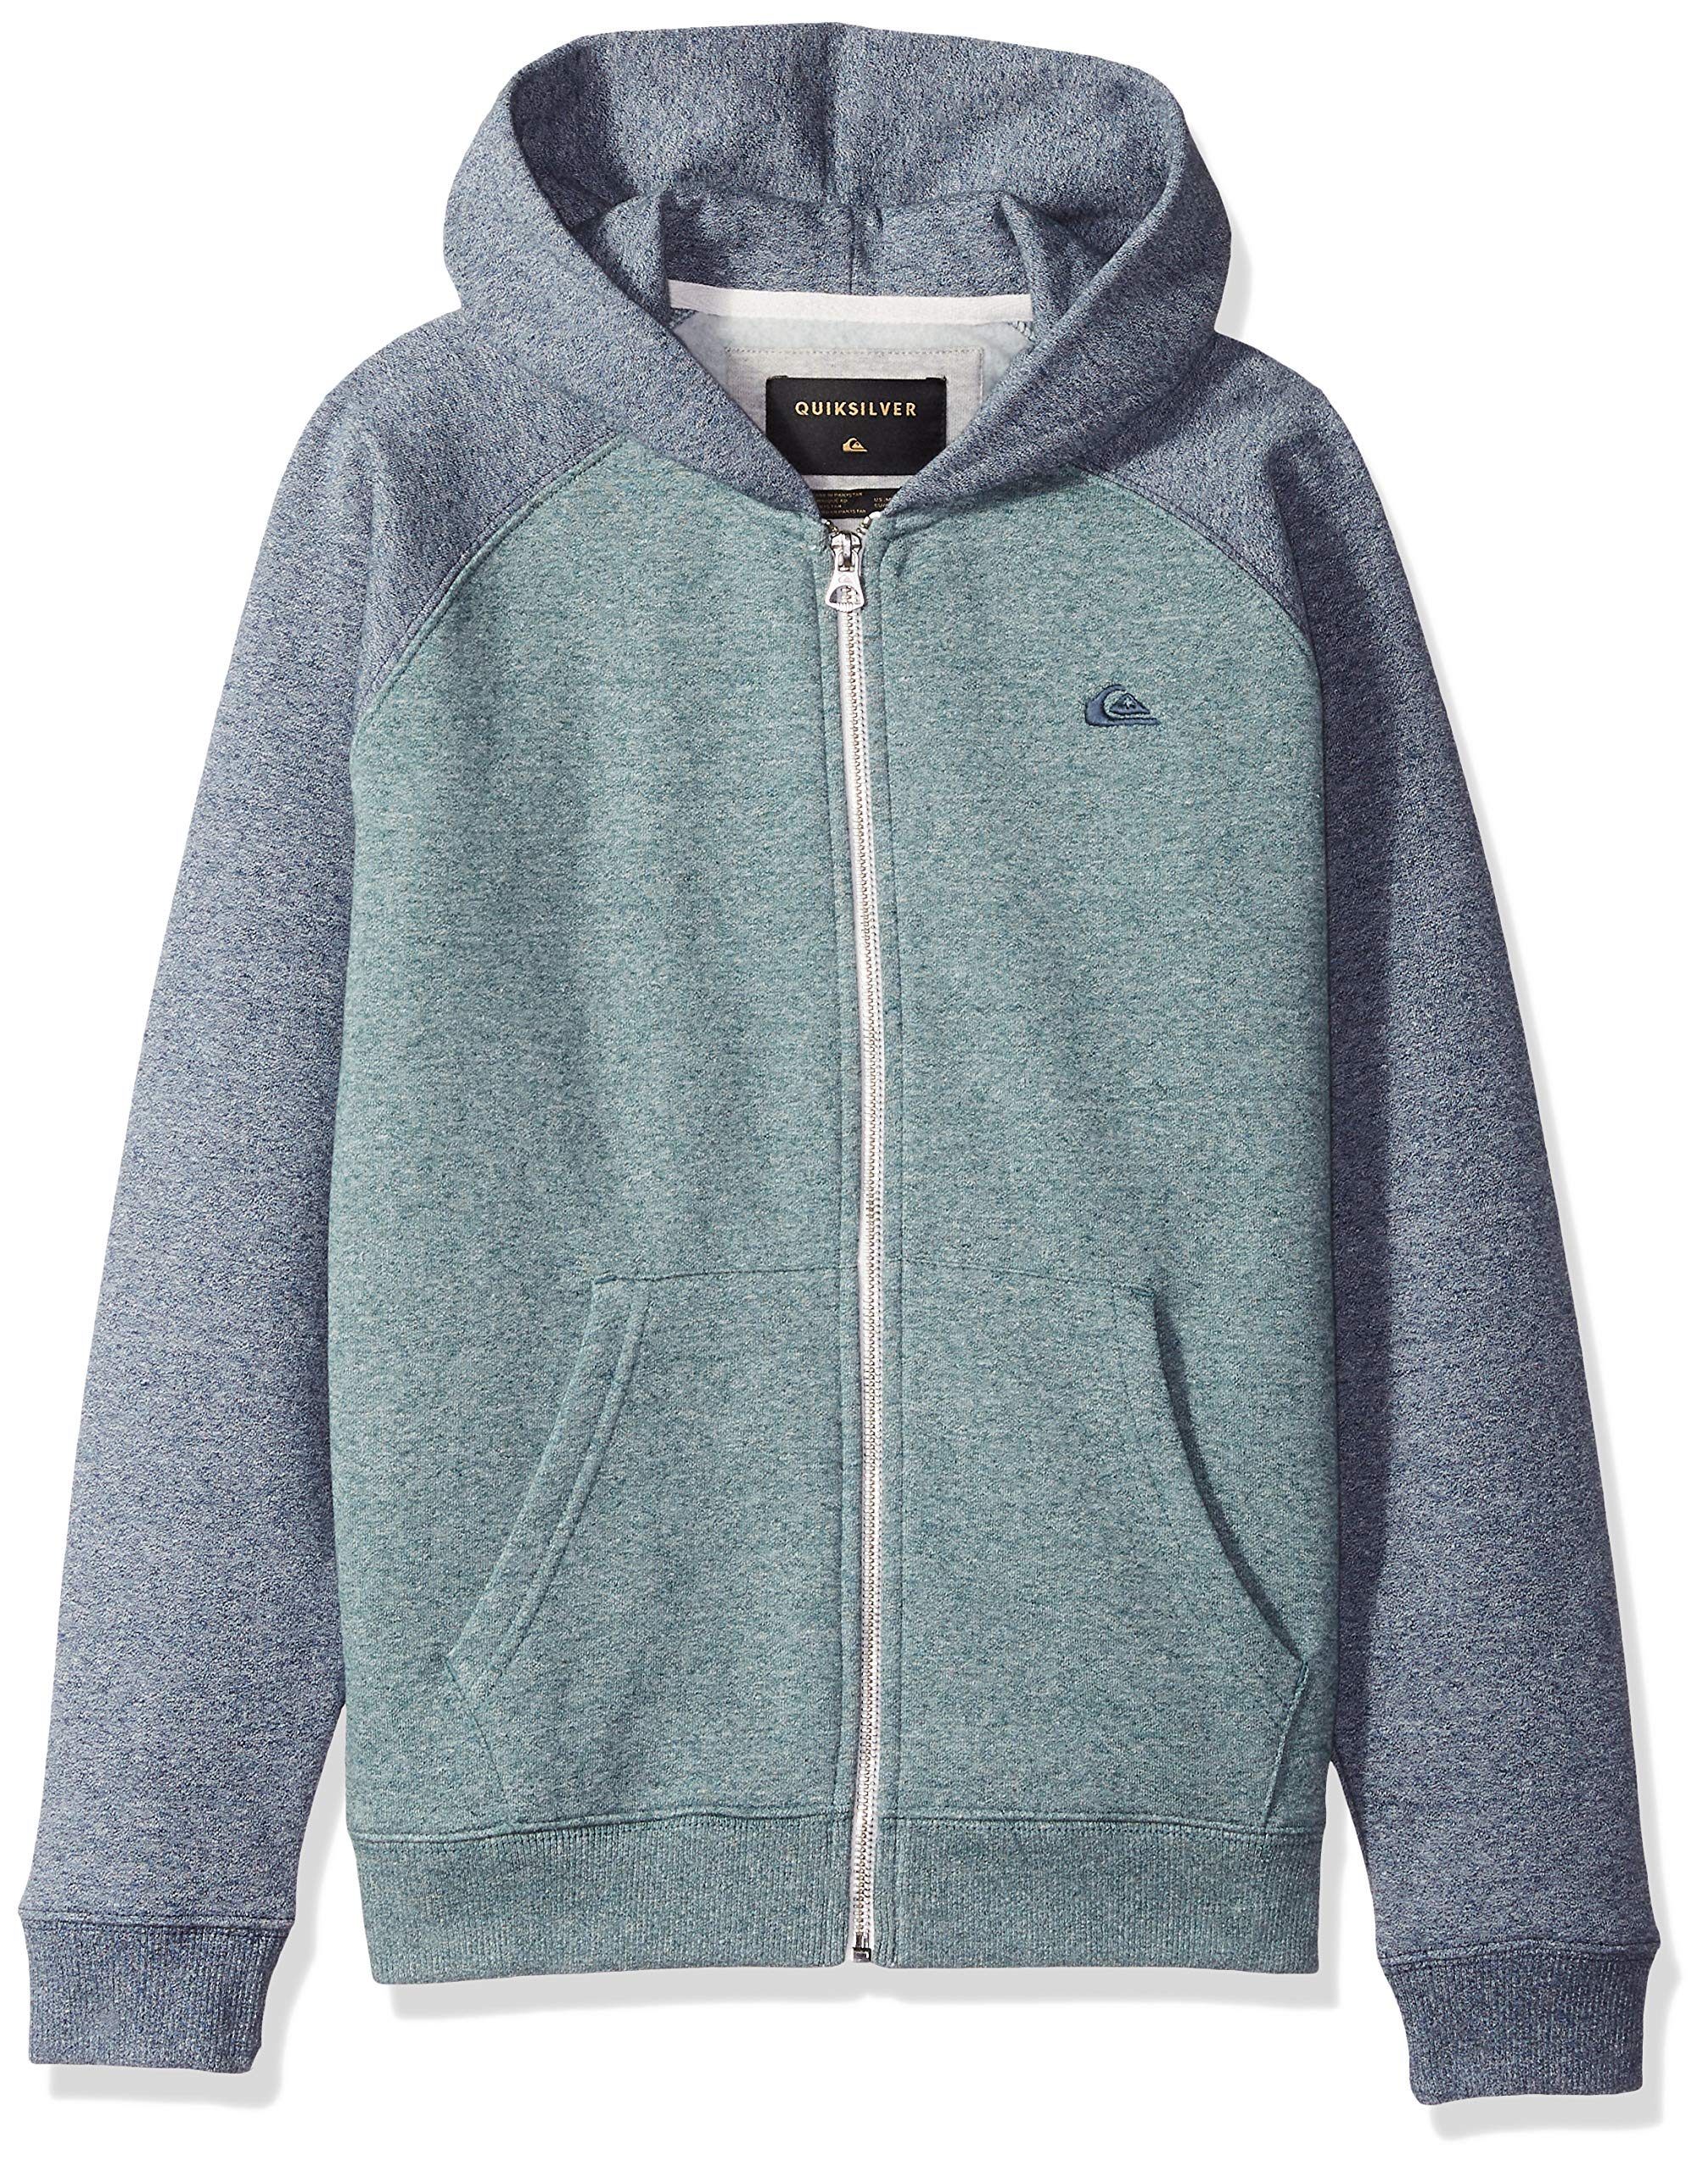 Quiksilver Big Boys' Everyday Youth Zip up Jacket, Tapestry Heather, L/14